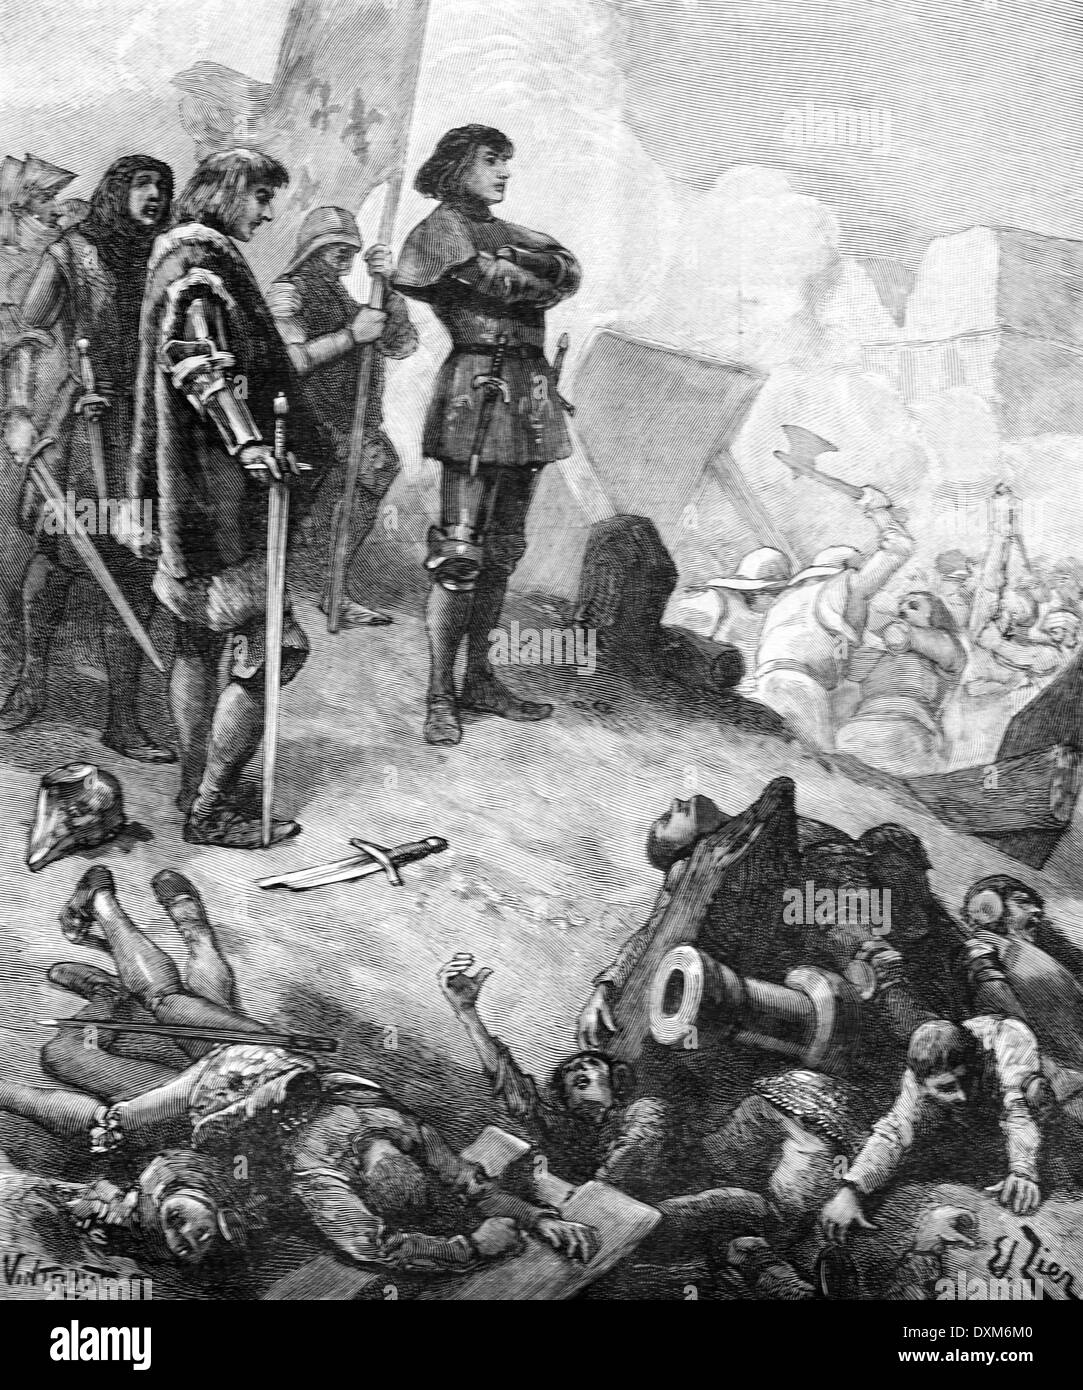 Siege of Dieppe During the 100 Years War (2 Nov 144é - 15 Aug 1443) Seine Maritime France - Stock Image